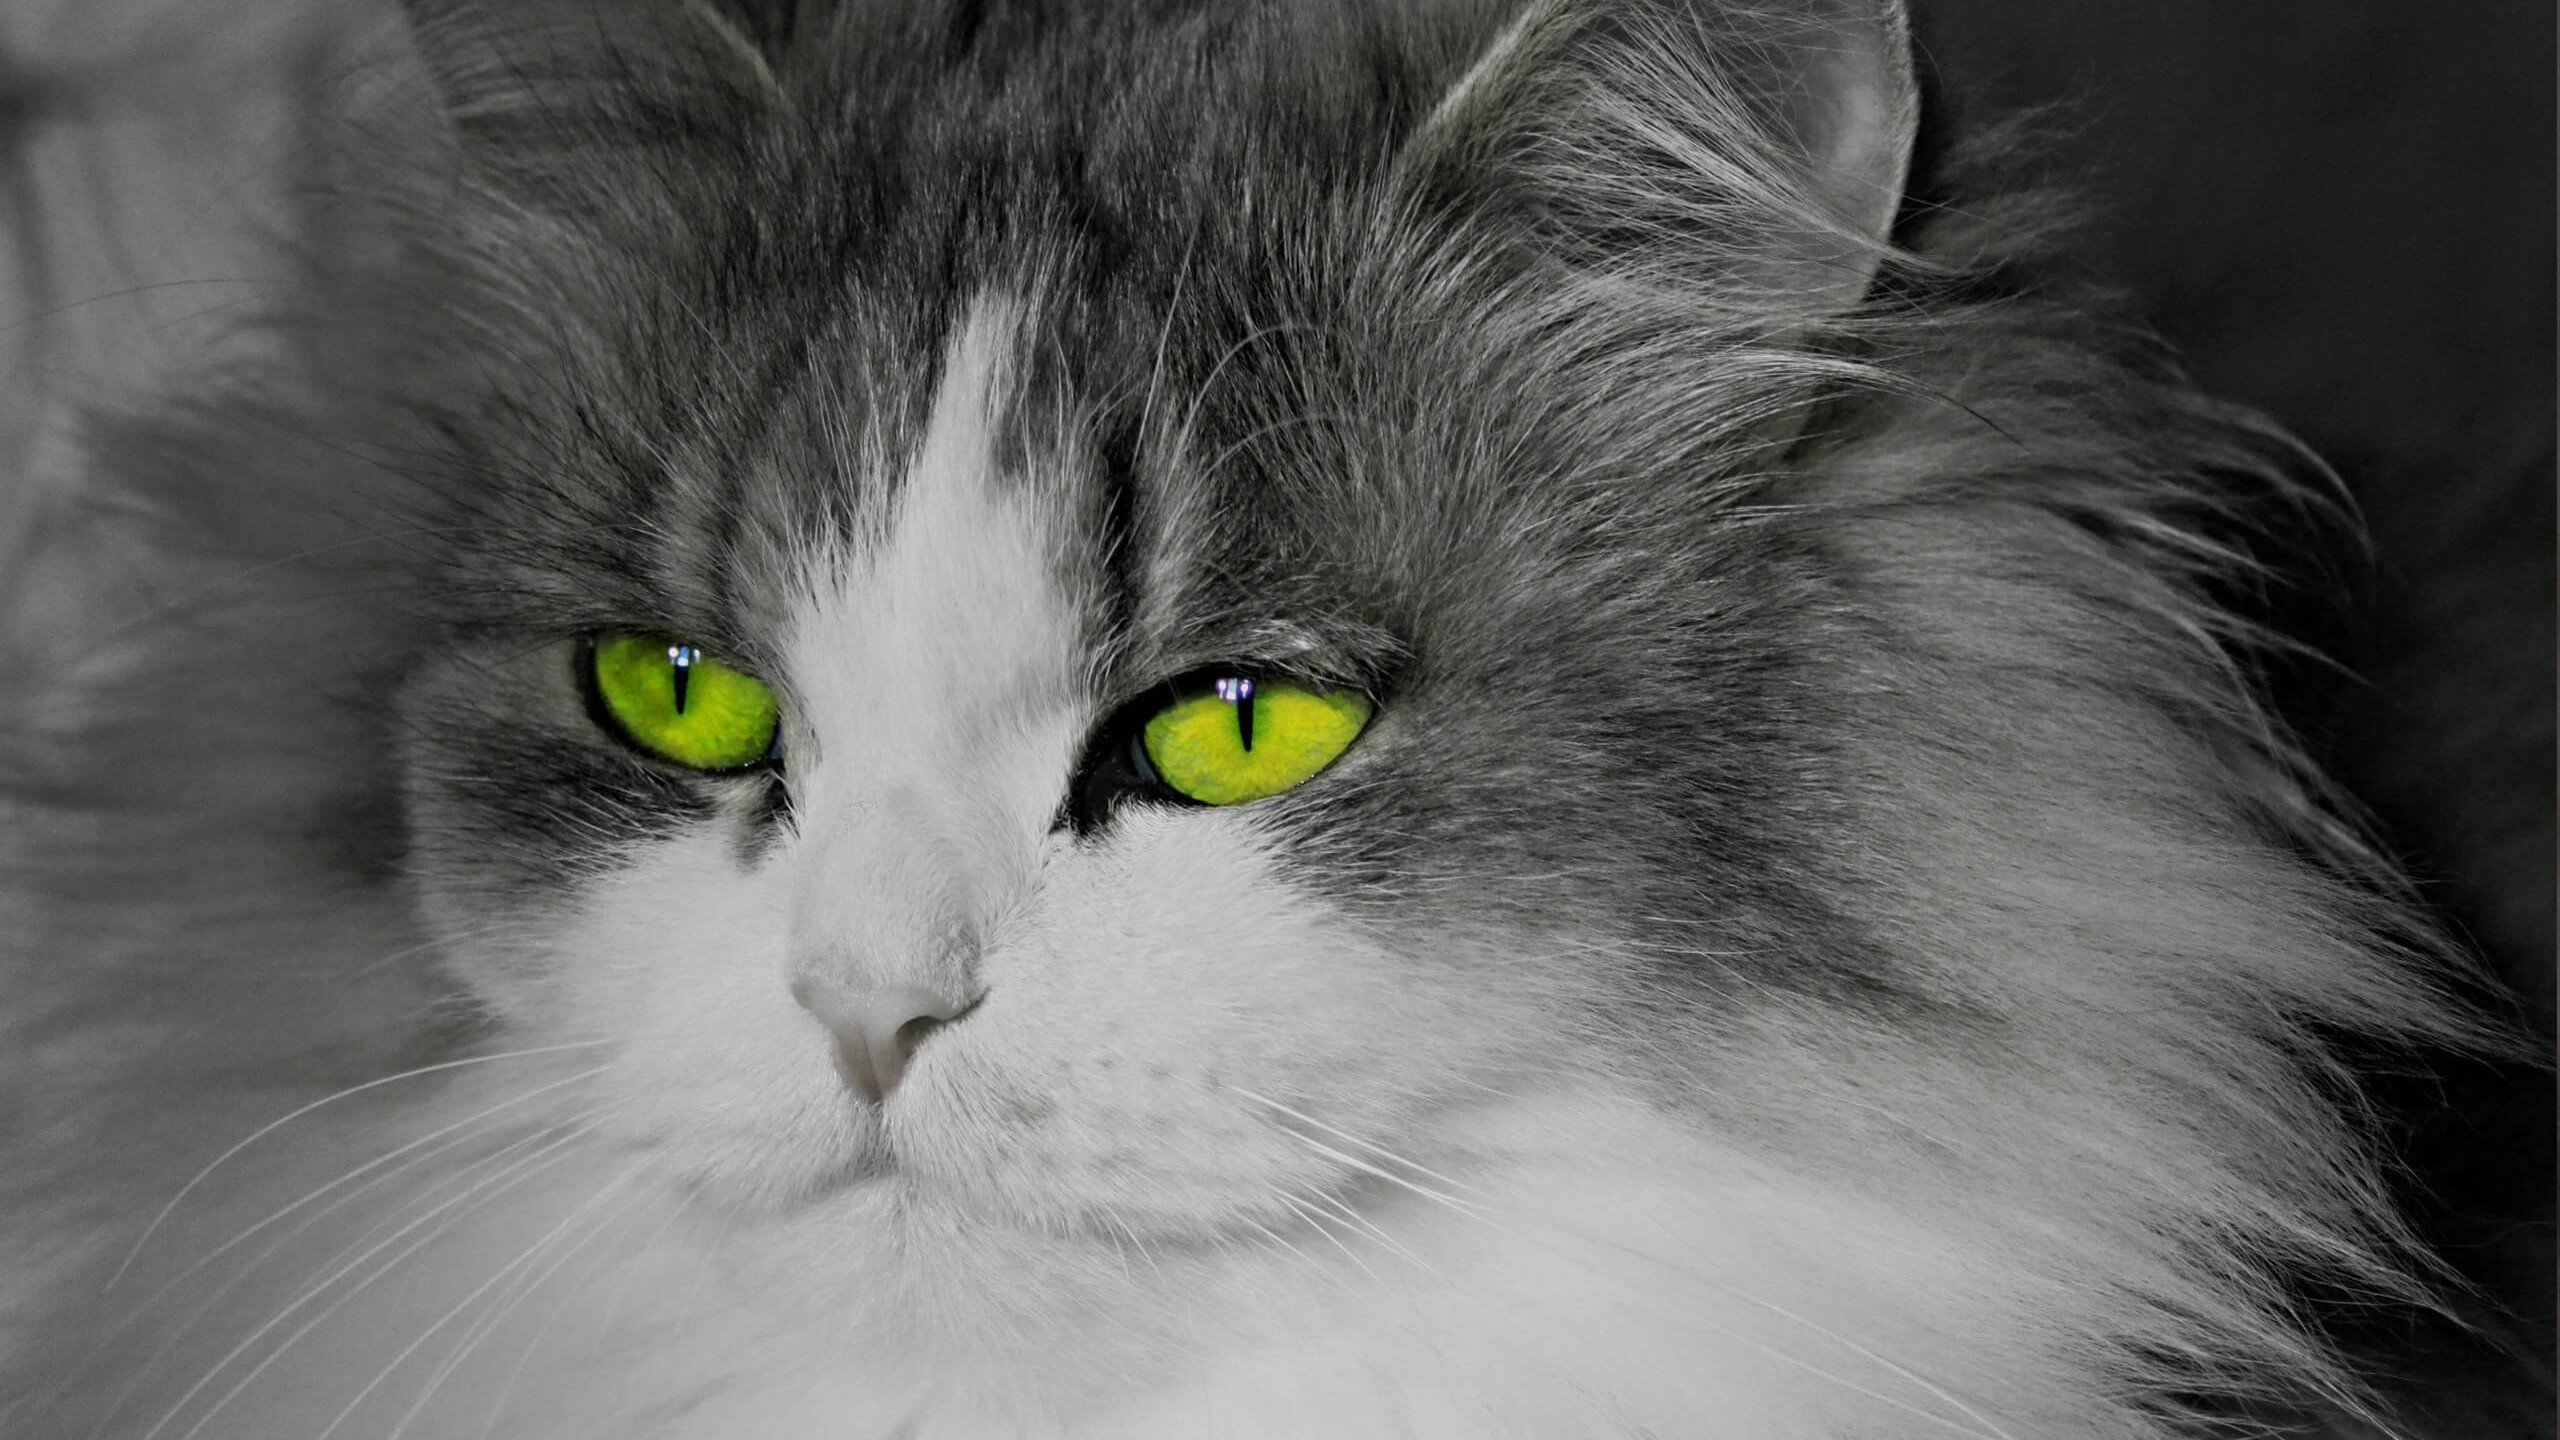 Cat With Stunningly Green Eyes Wallpaper for Desktop 2560x1440